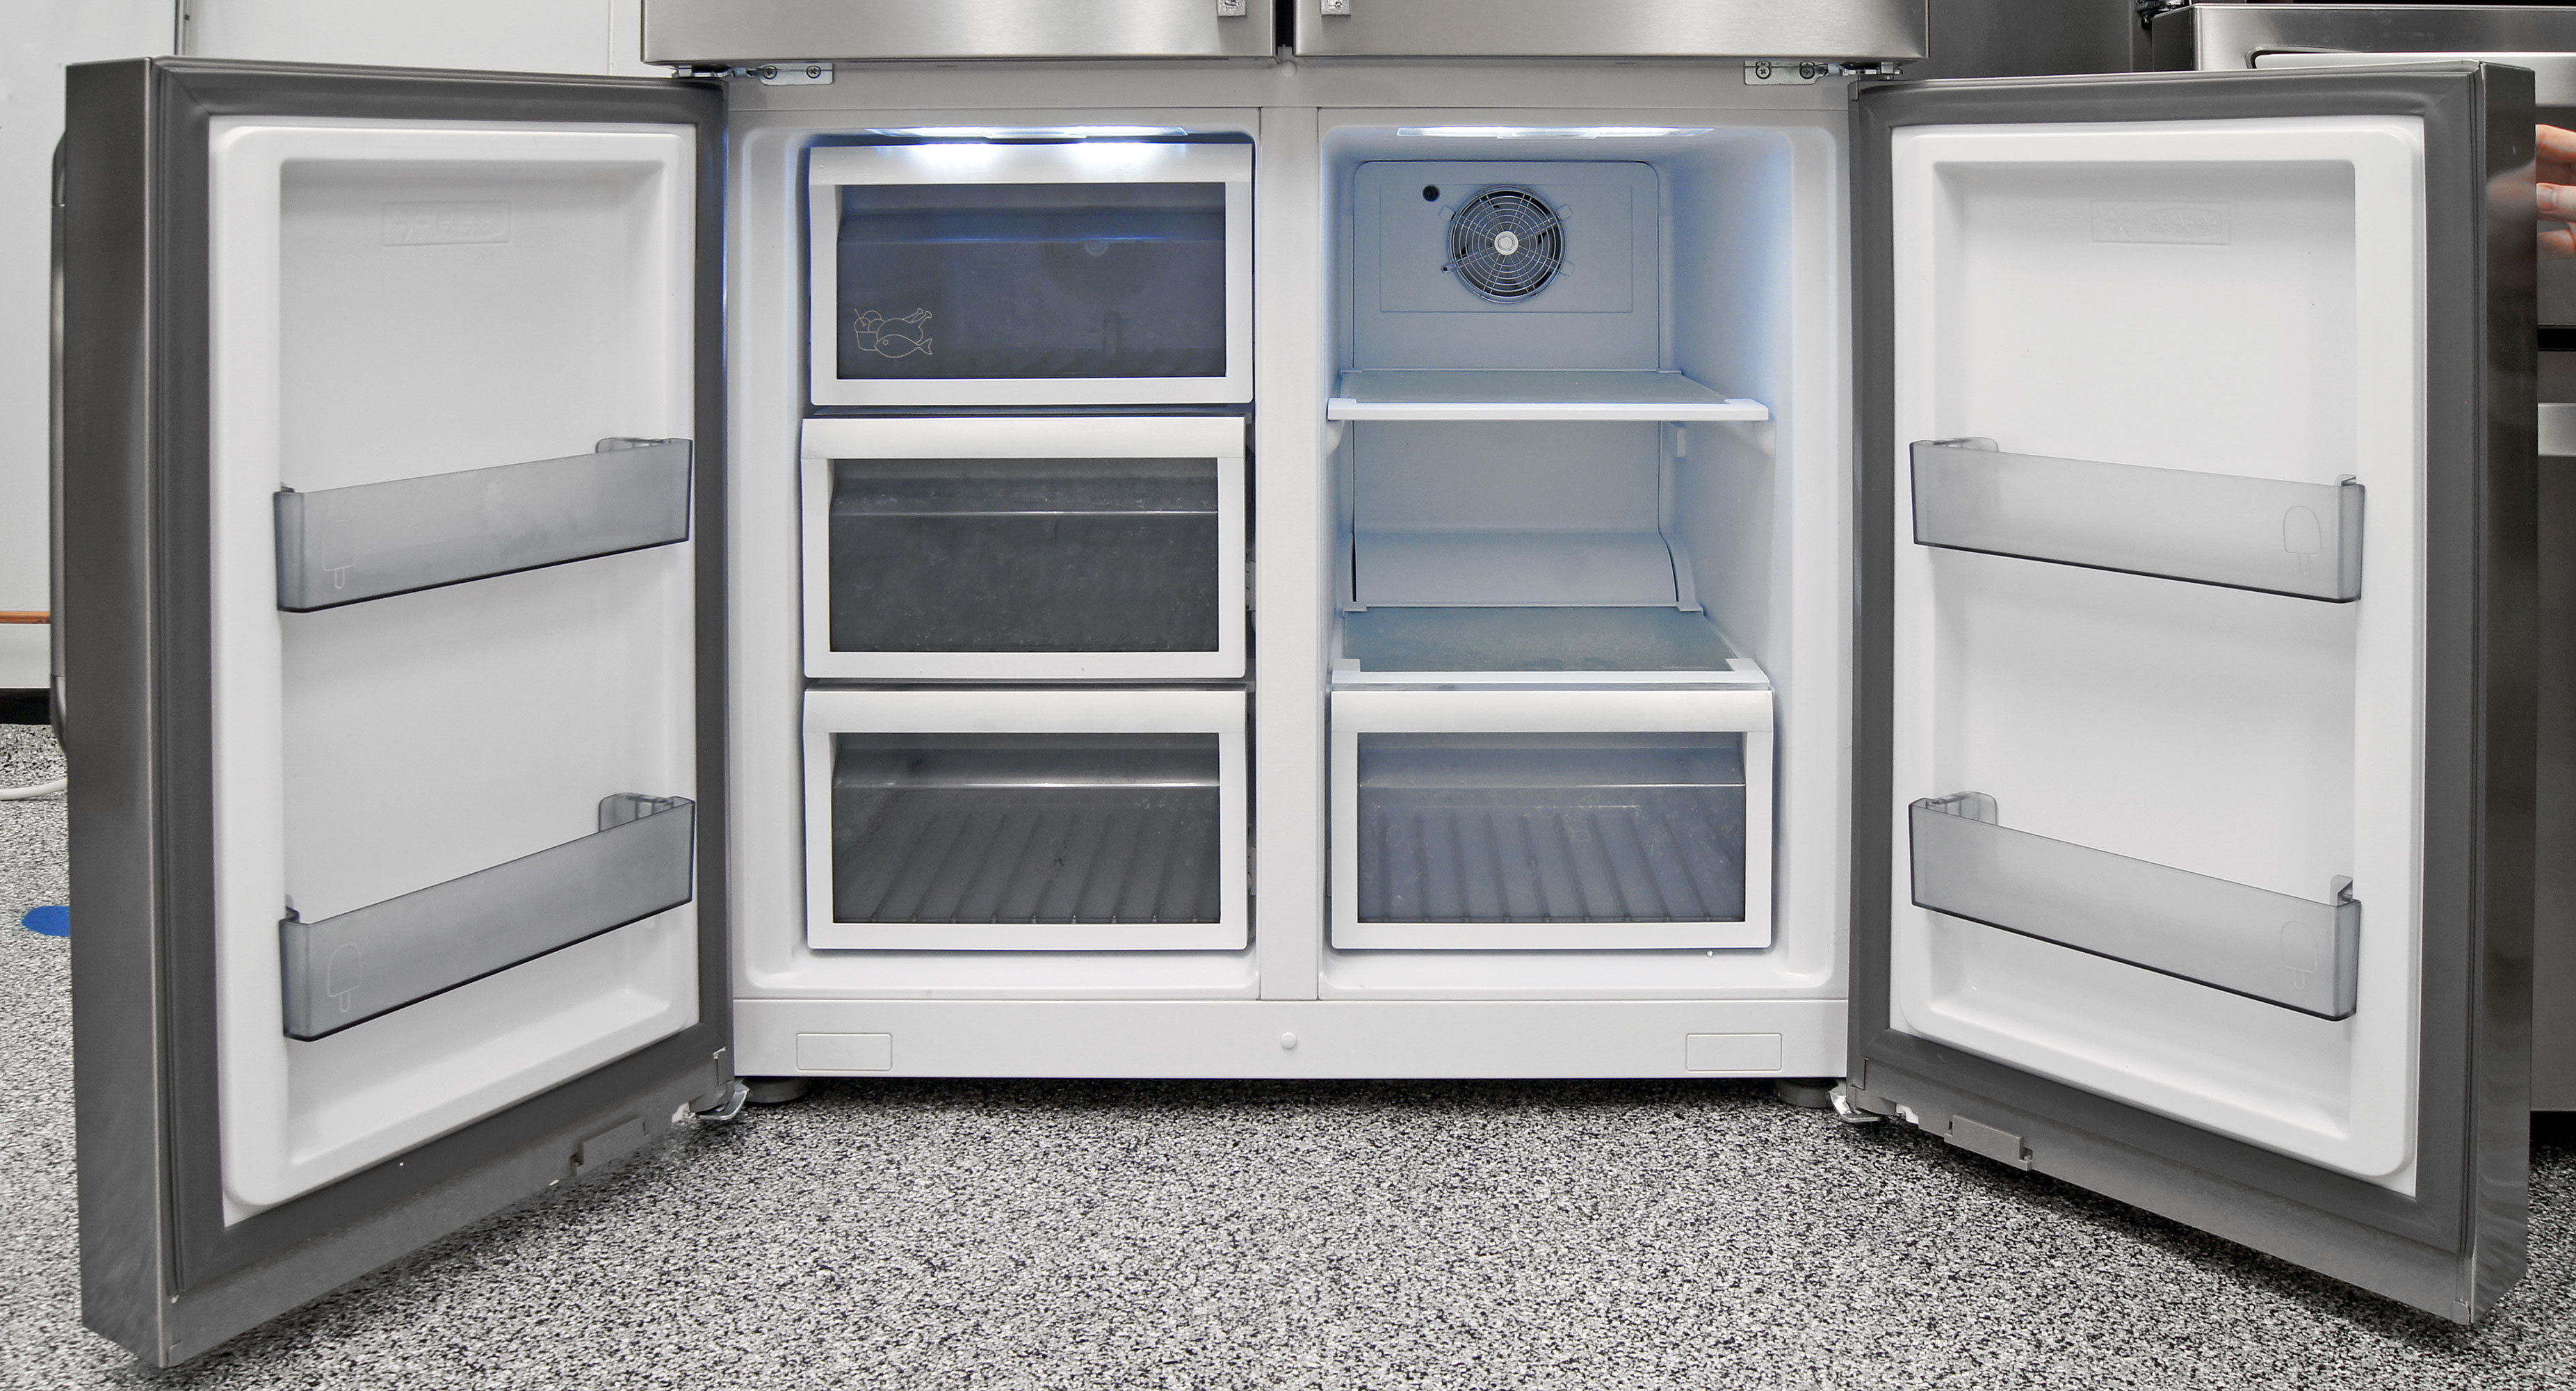 The Dacor DTF364SIWS's lower left compartment is always a freezer, but the right-hand side offers adjustable storage from -10°F up to 50°F.